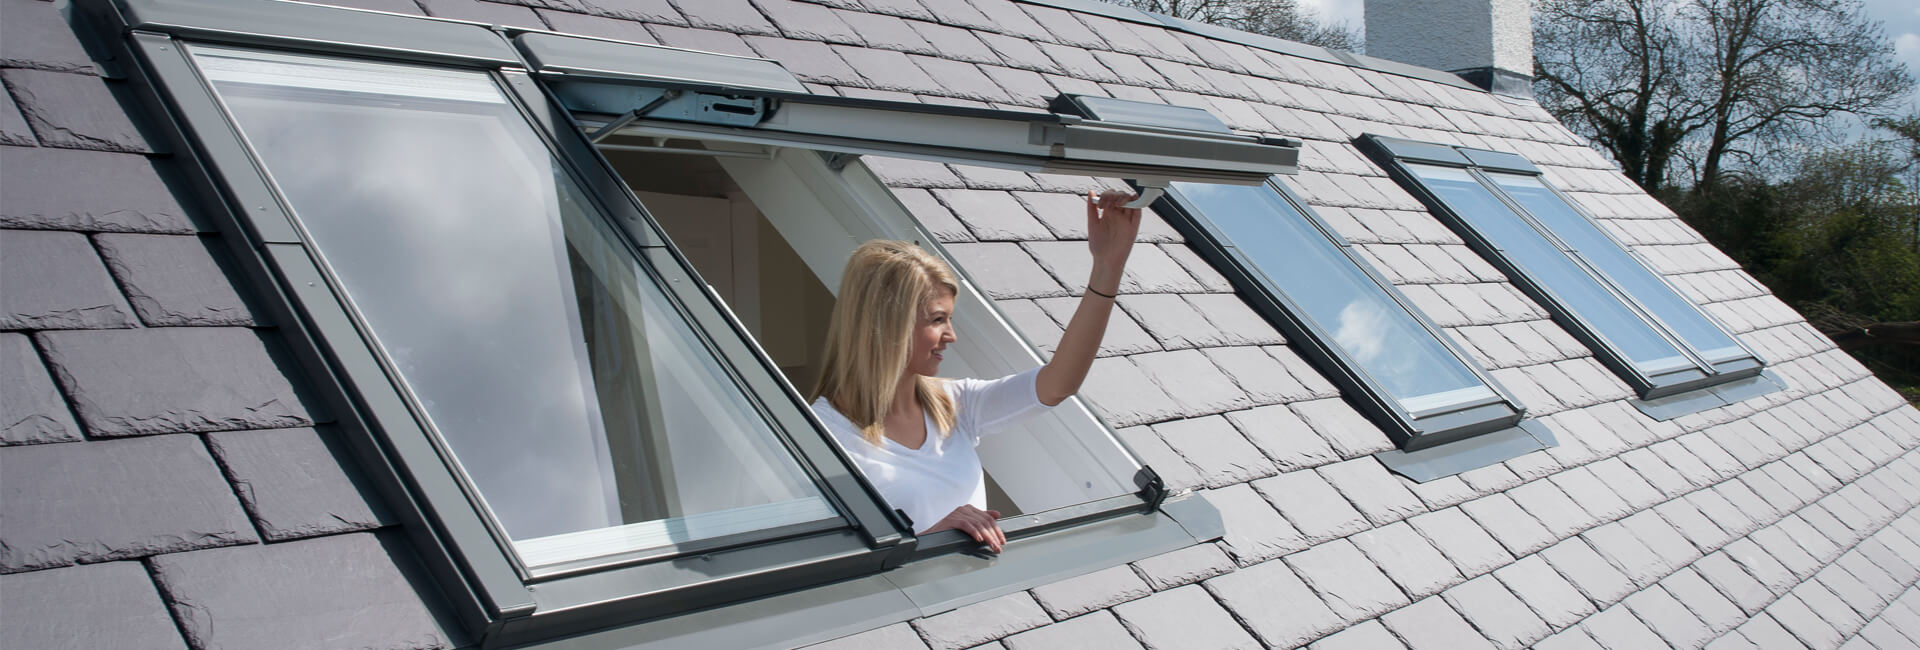 Antincendio vasistas keylite roof windows for Velux installatori